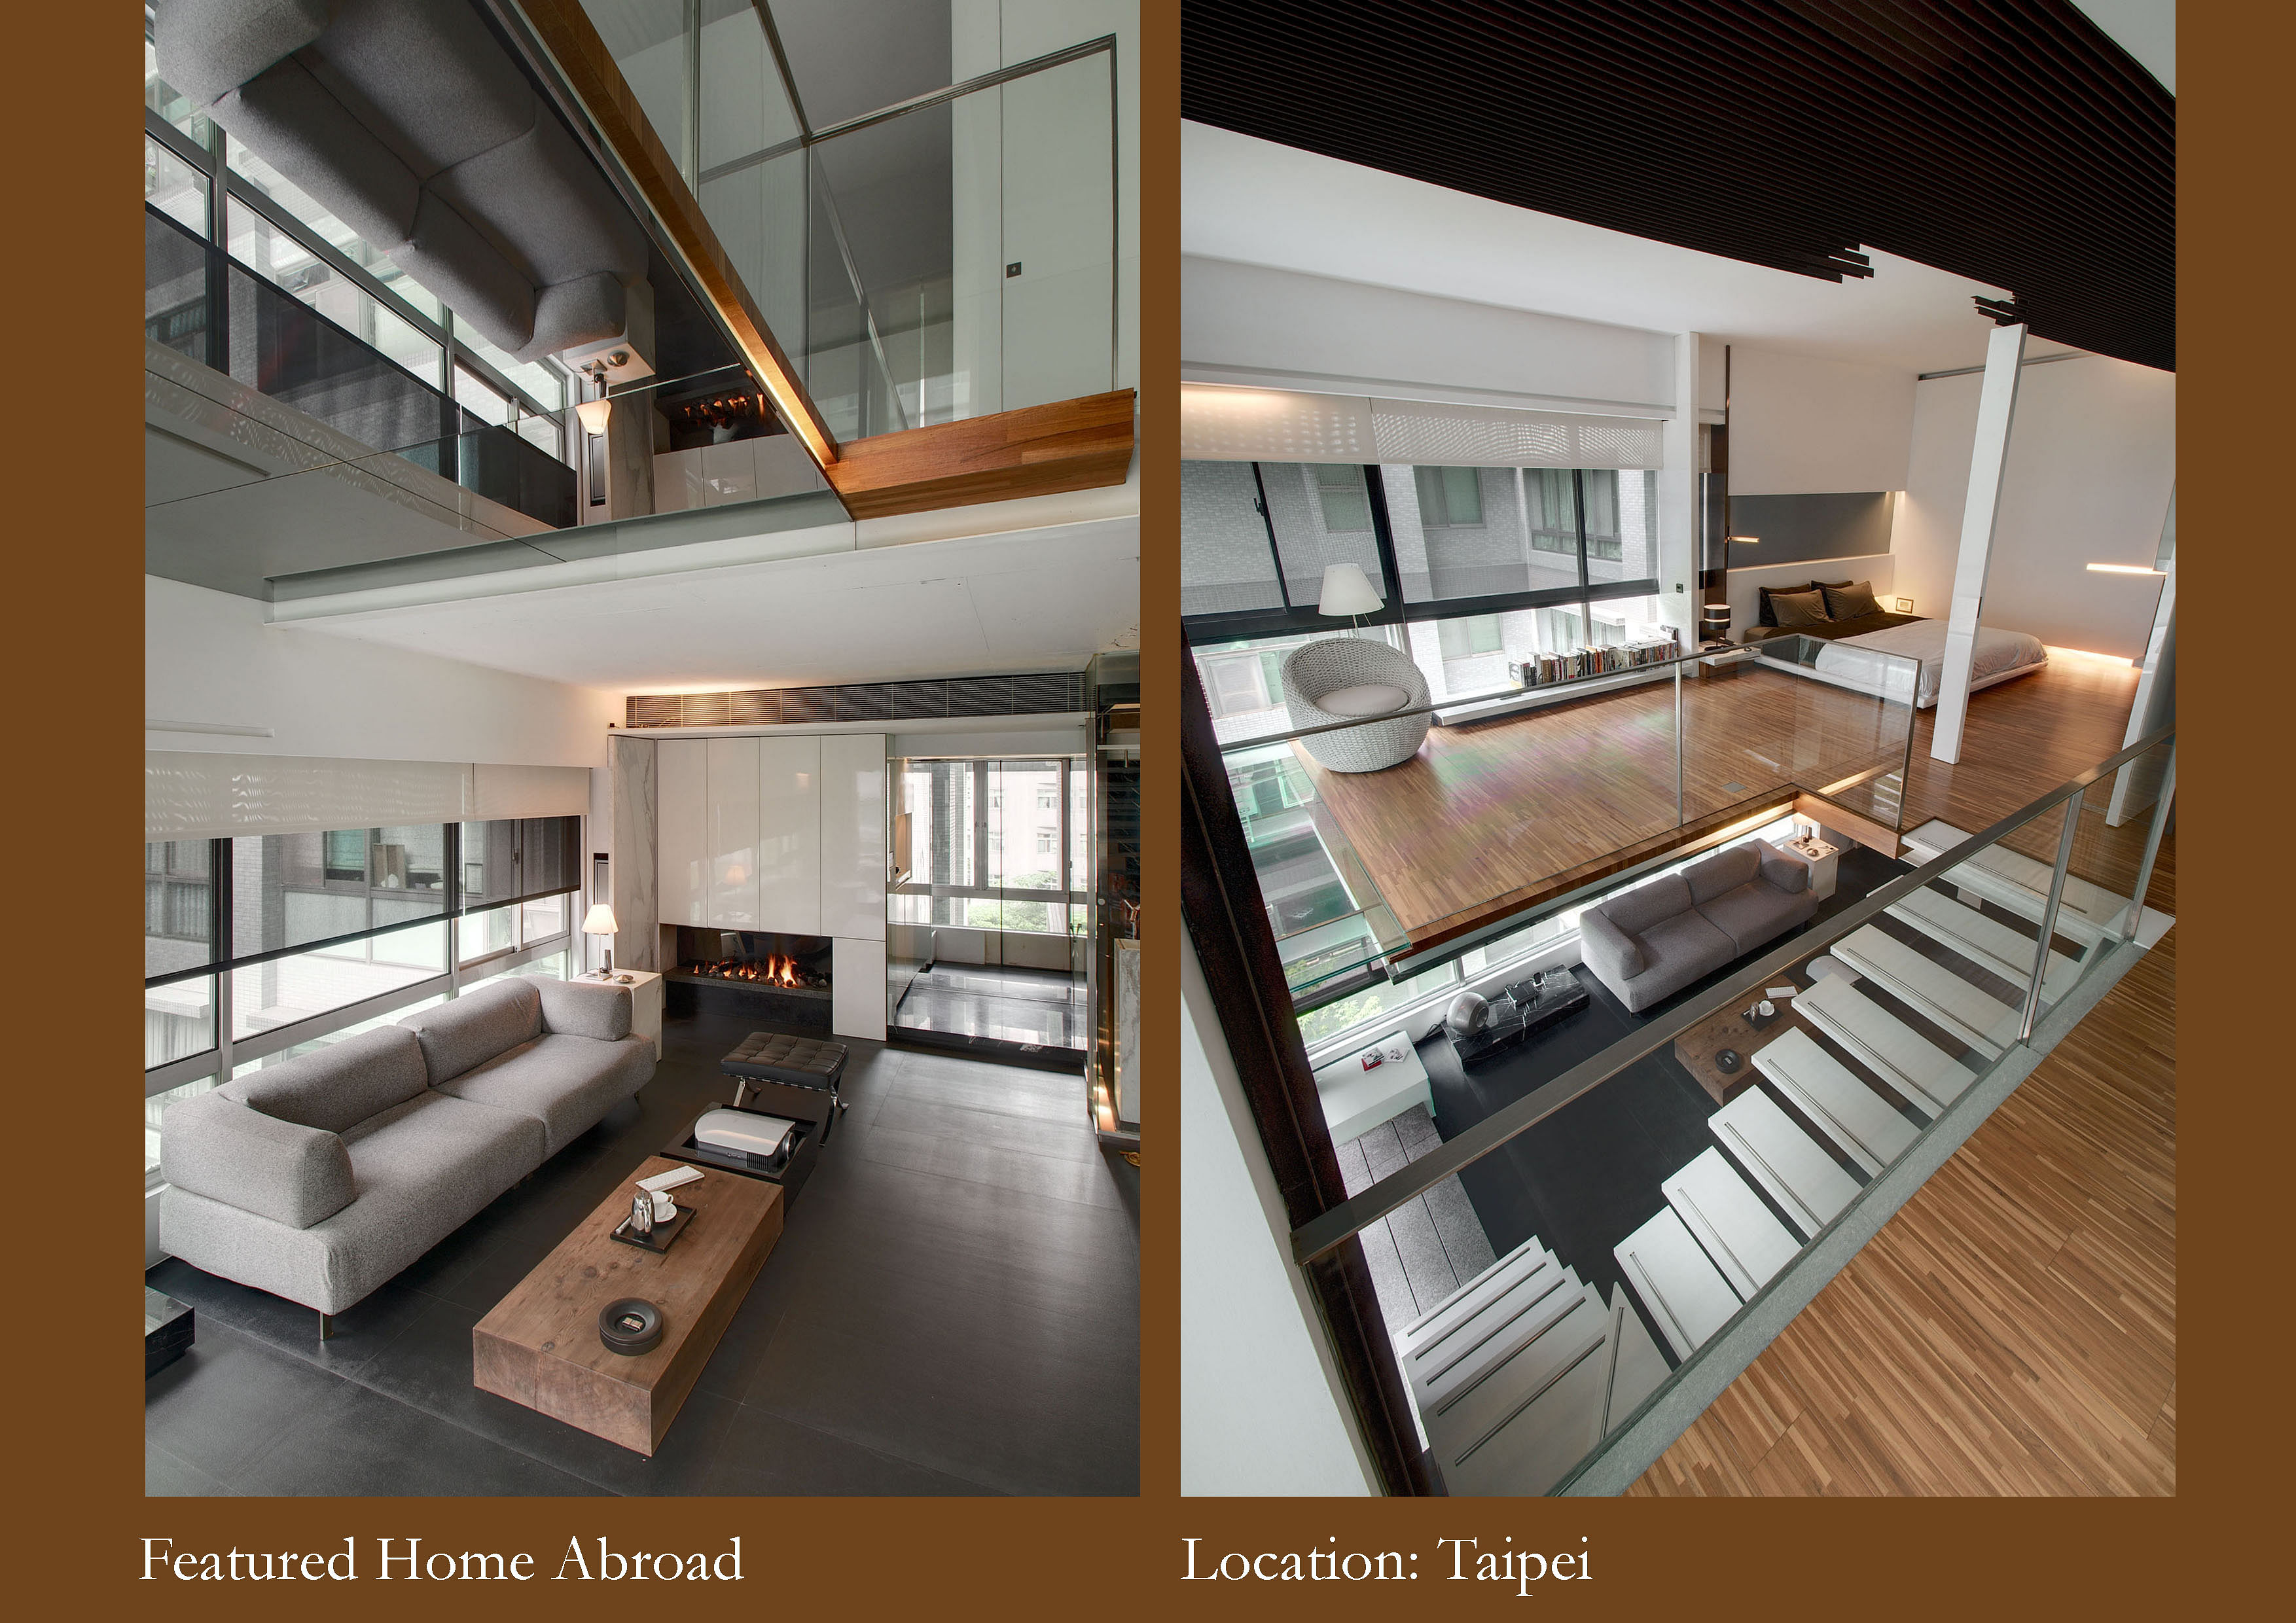 Design inspiration home abroad feature taipei loft for Loft apartment interior design